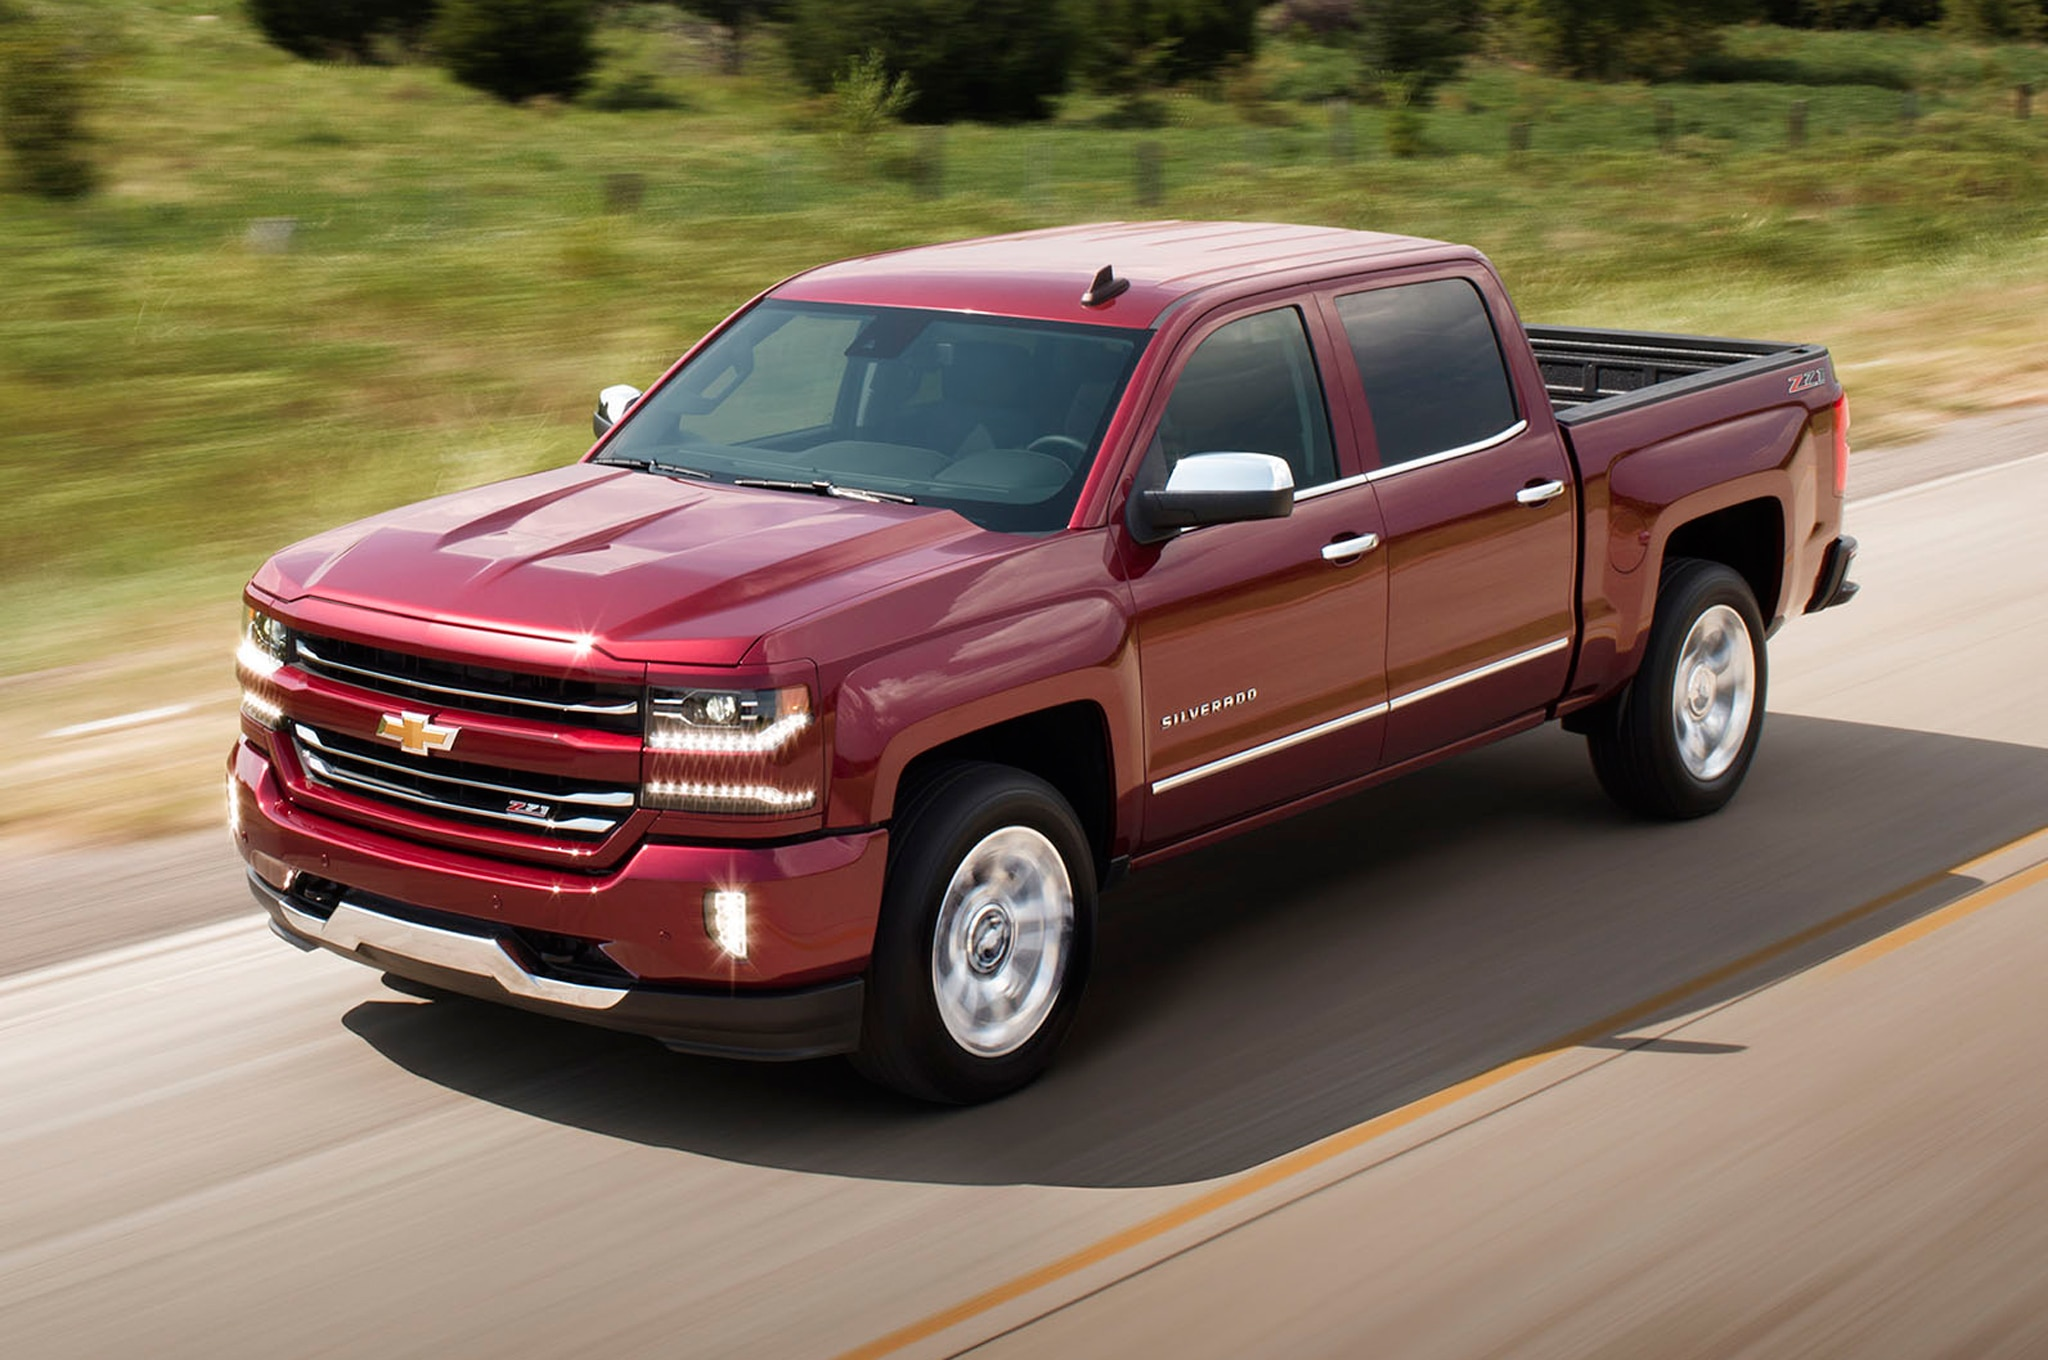 2016 Chevrolet Silverado Offers 8Speed Automatic with 53Liter V8